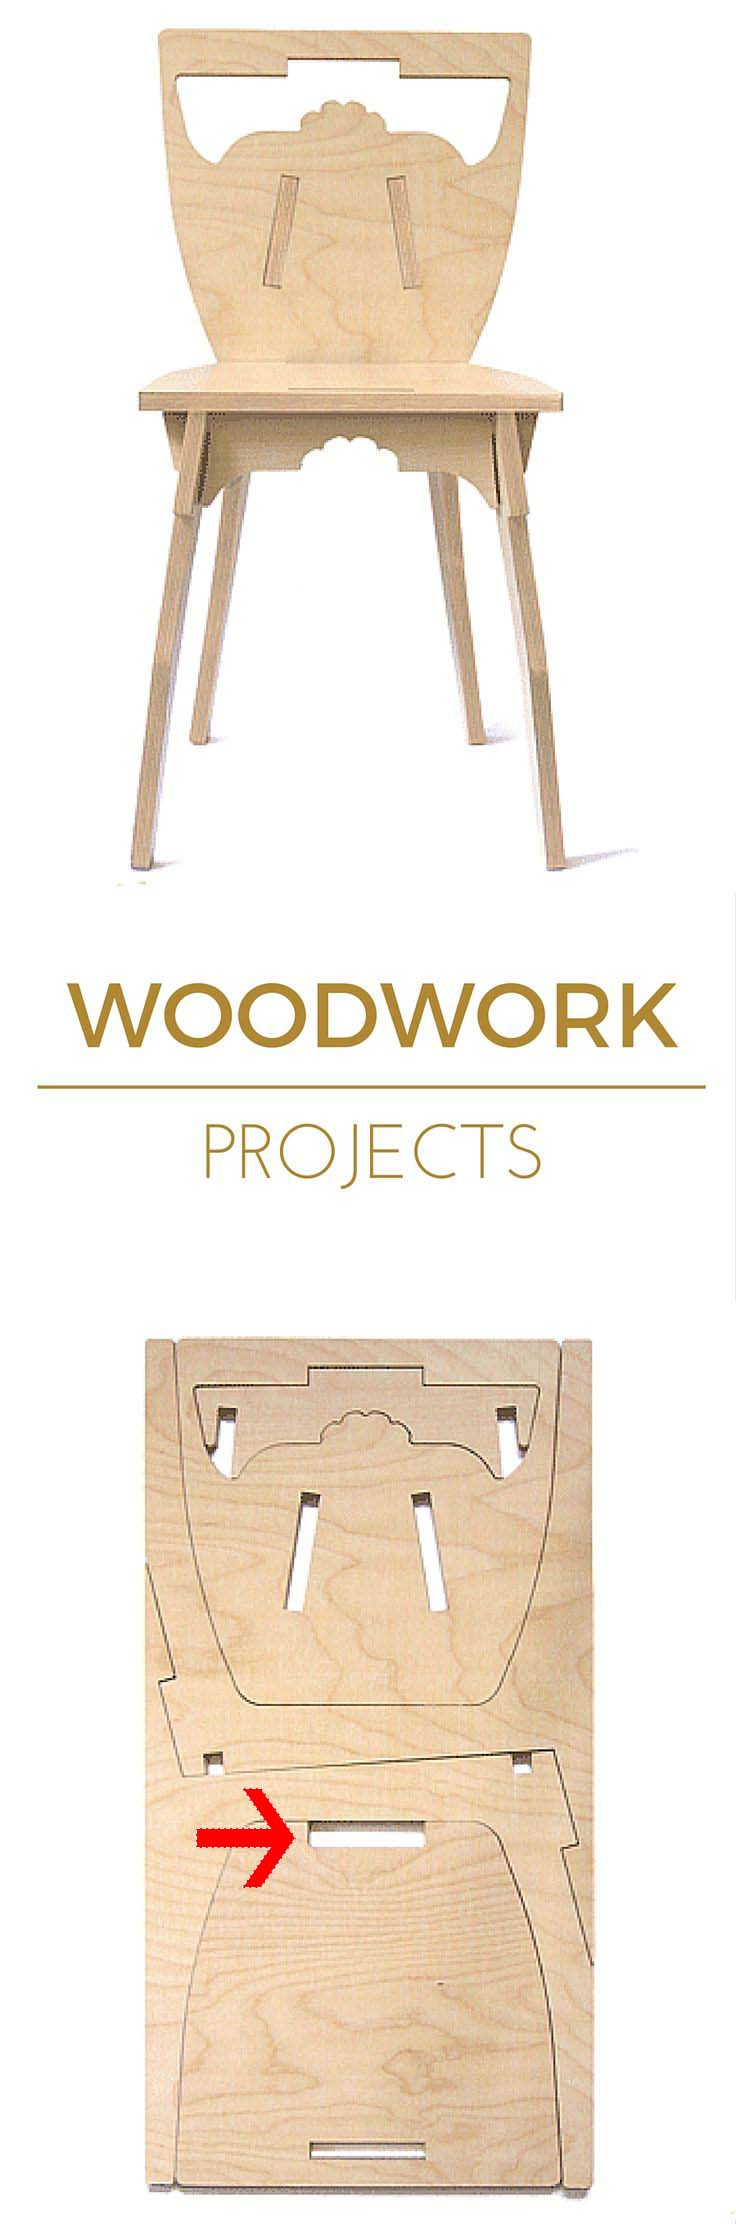 plywood-furniture-plans-flatpack-furniture2.jpg